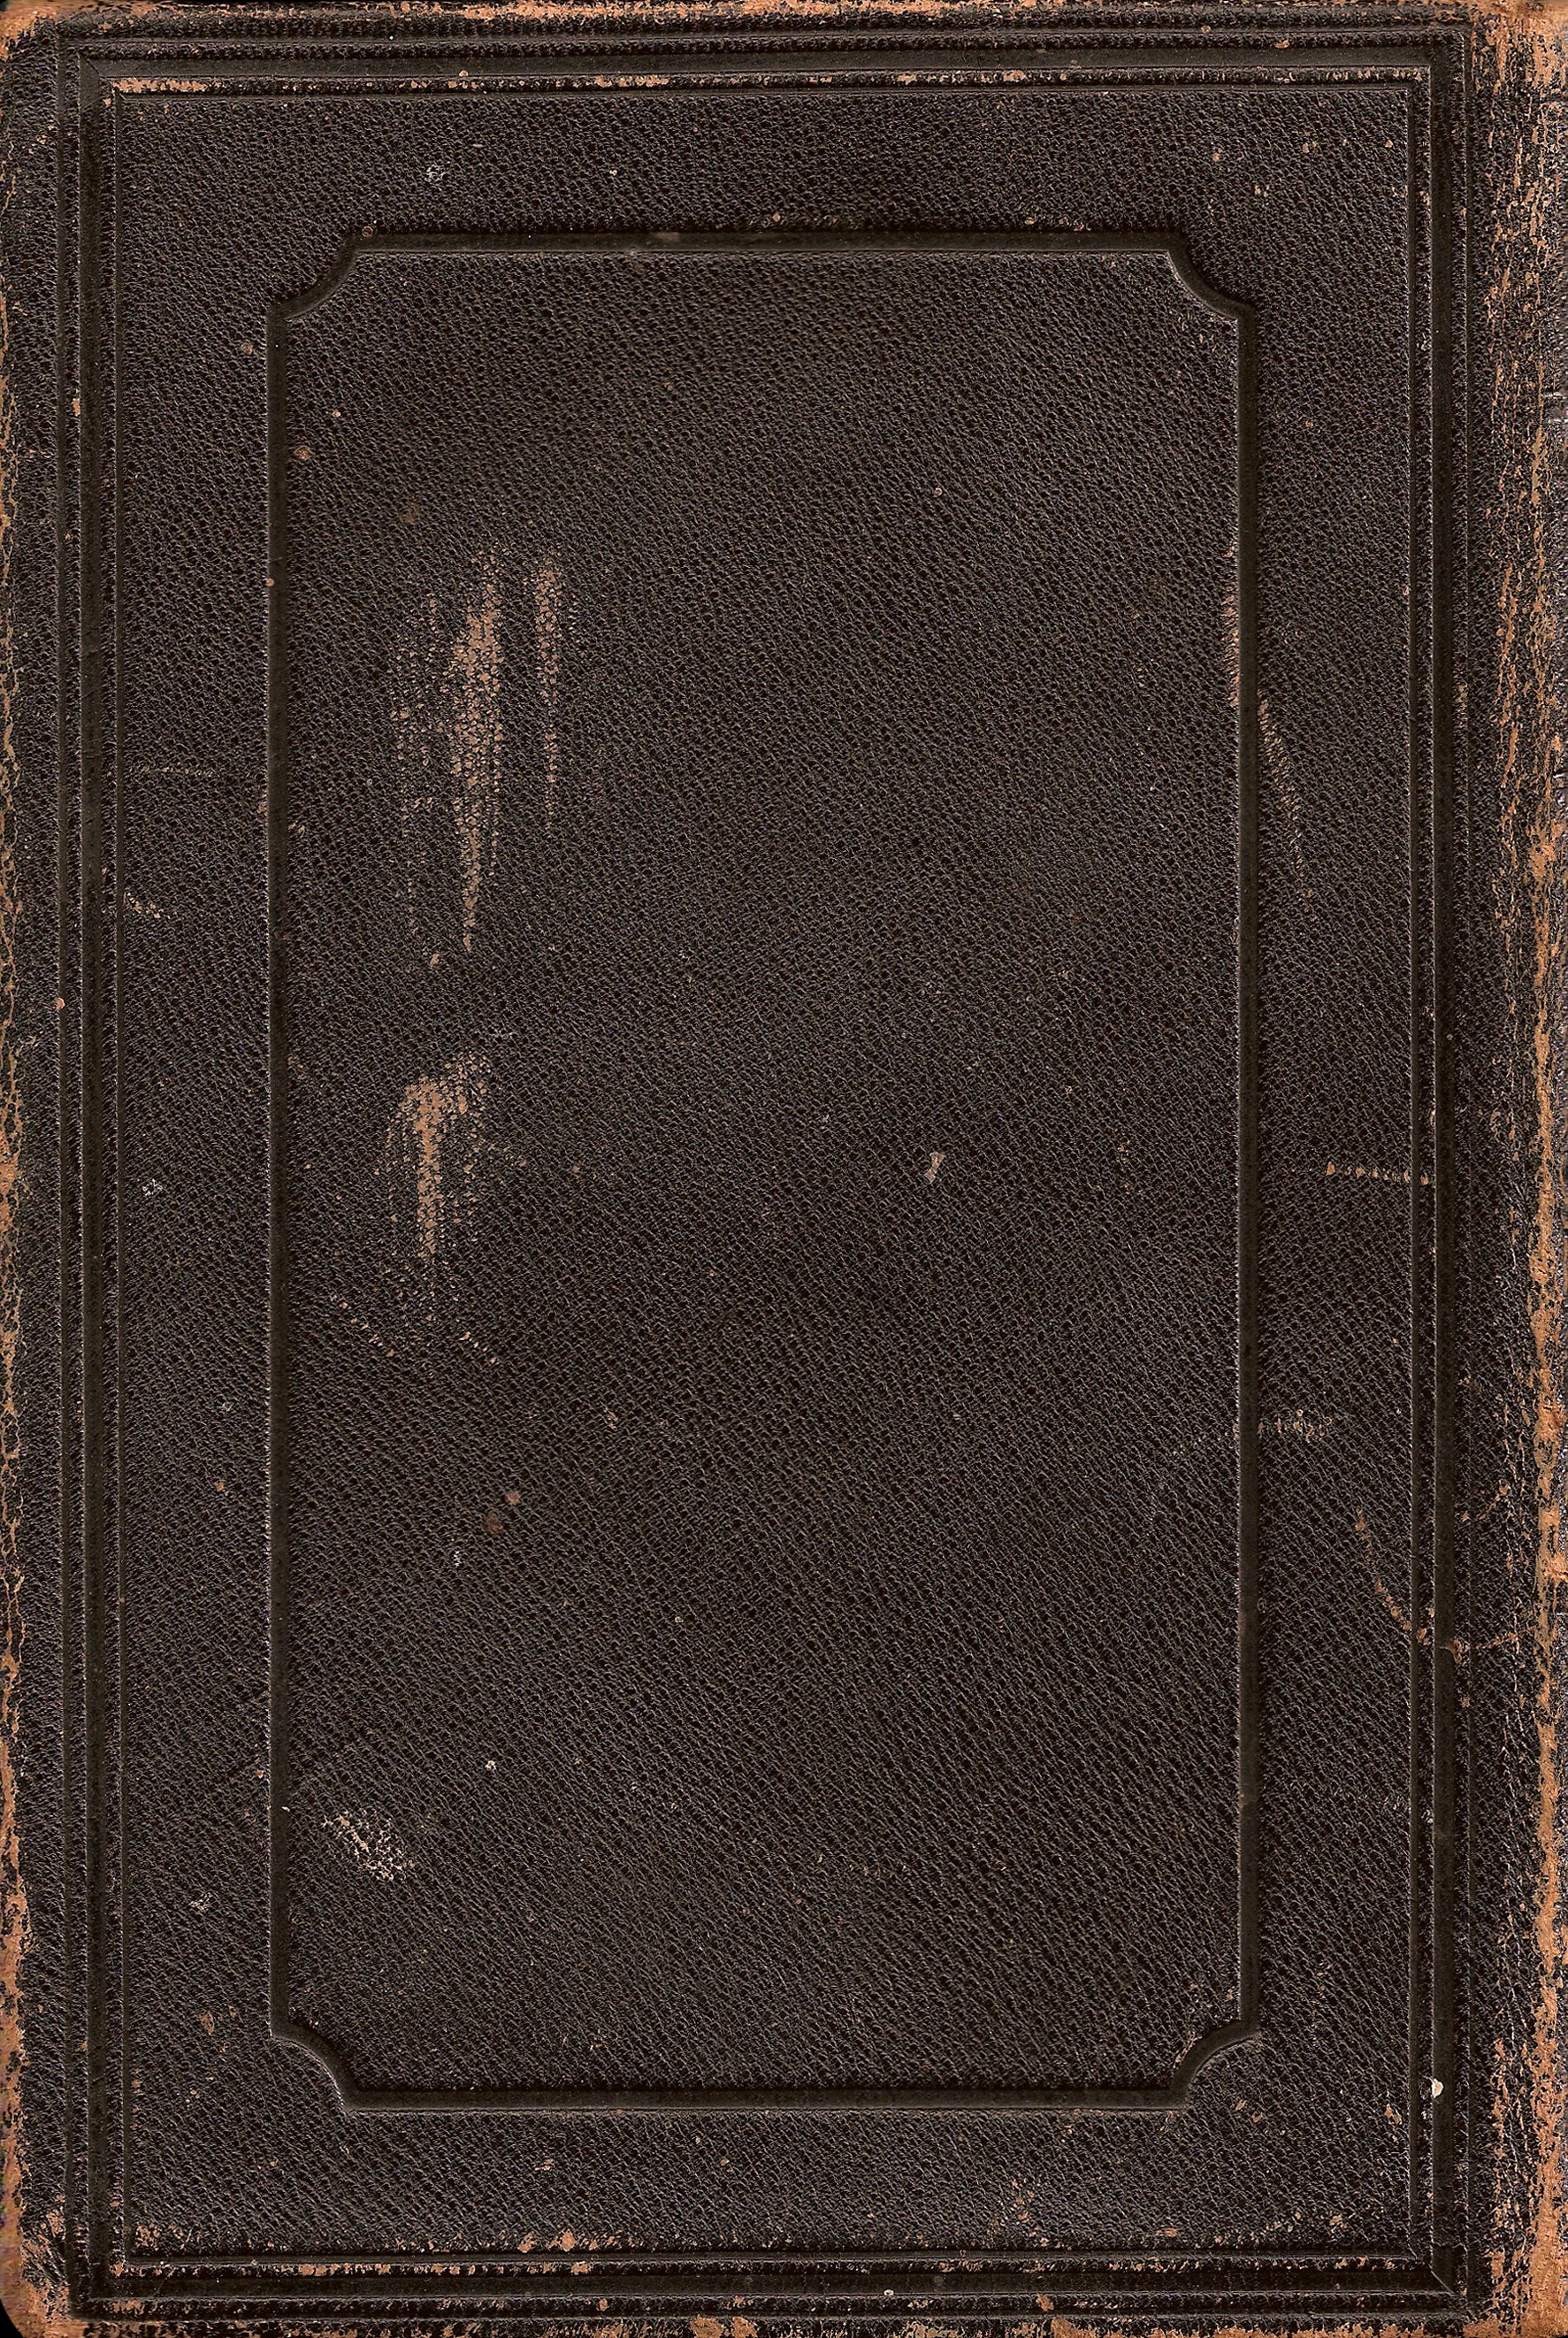 worn_book_4_back_by_sputt.jpg